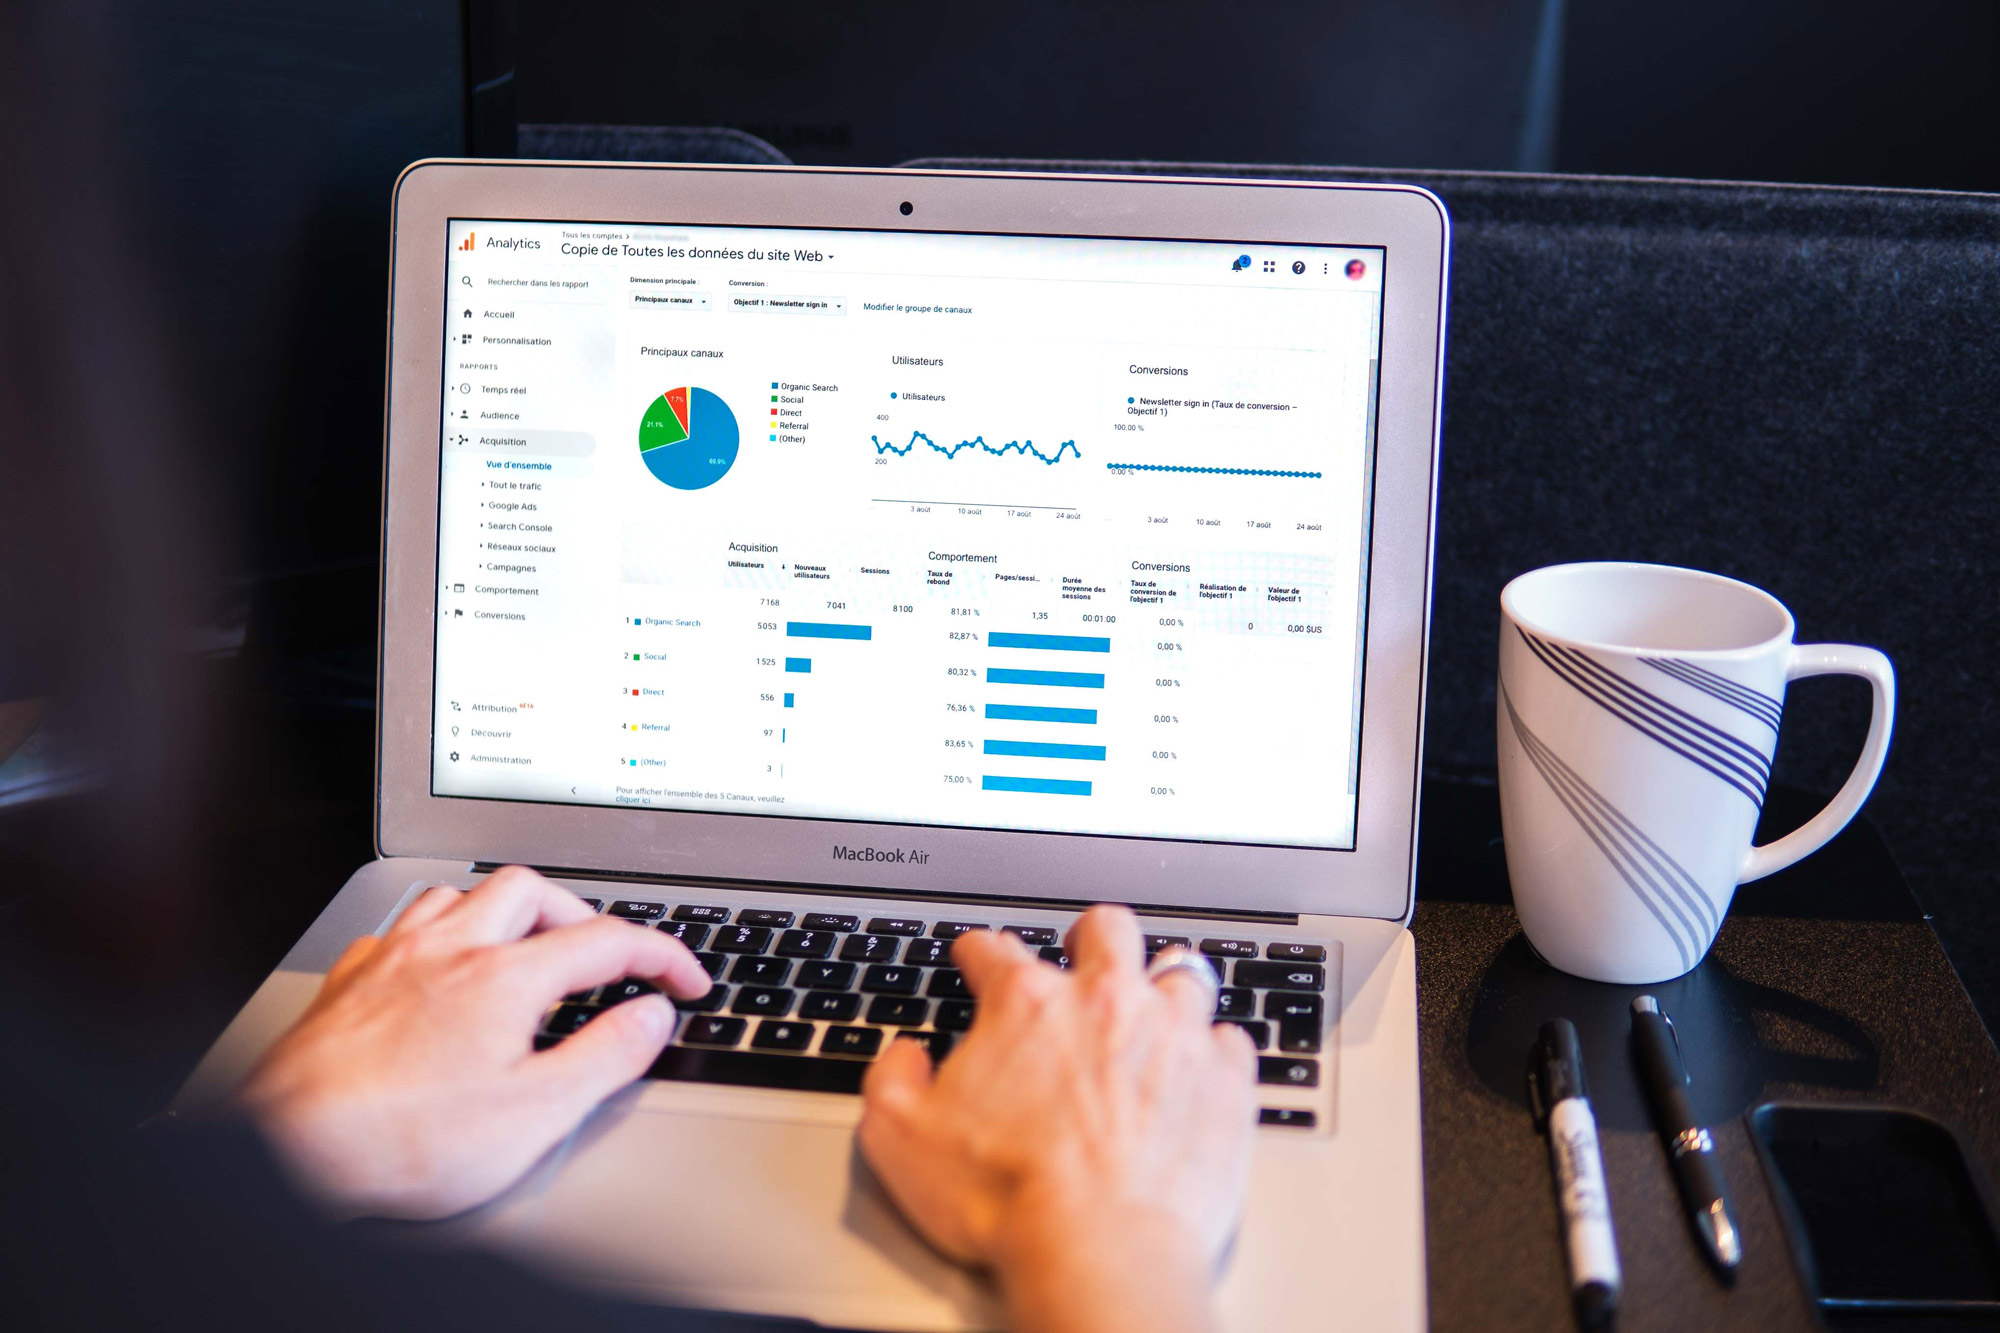 Person tracking their SEO analytics on laptop with analytics on screen.